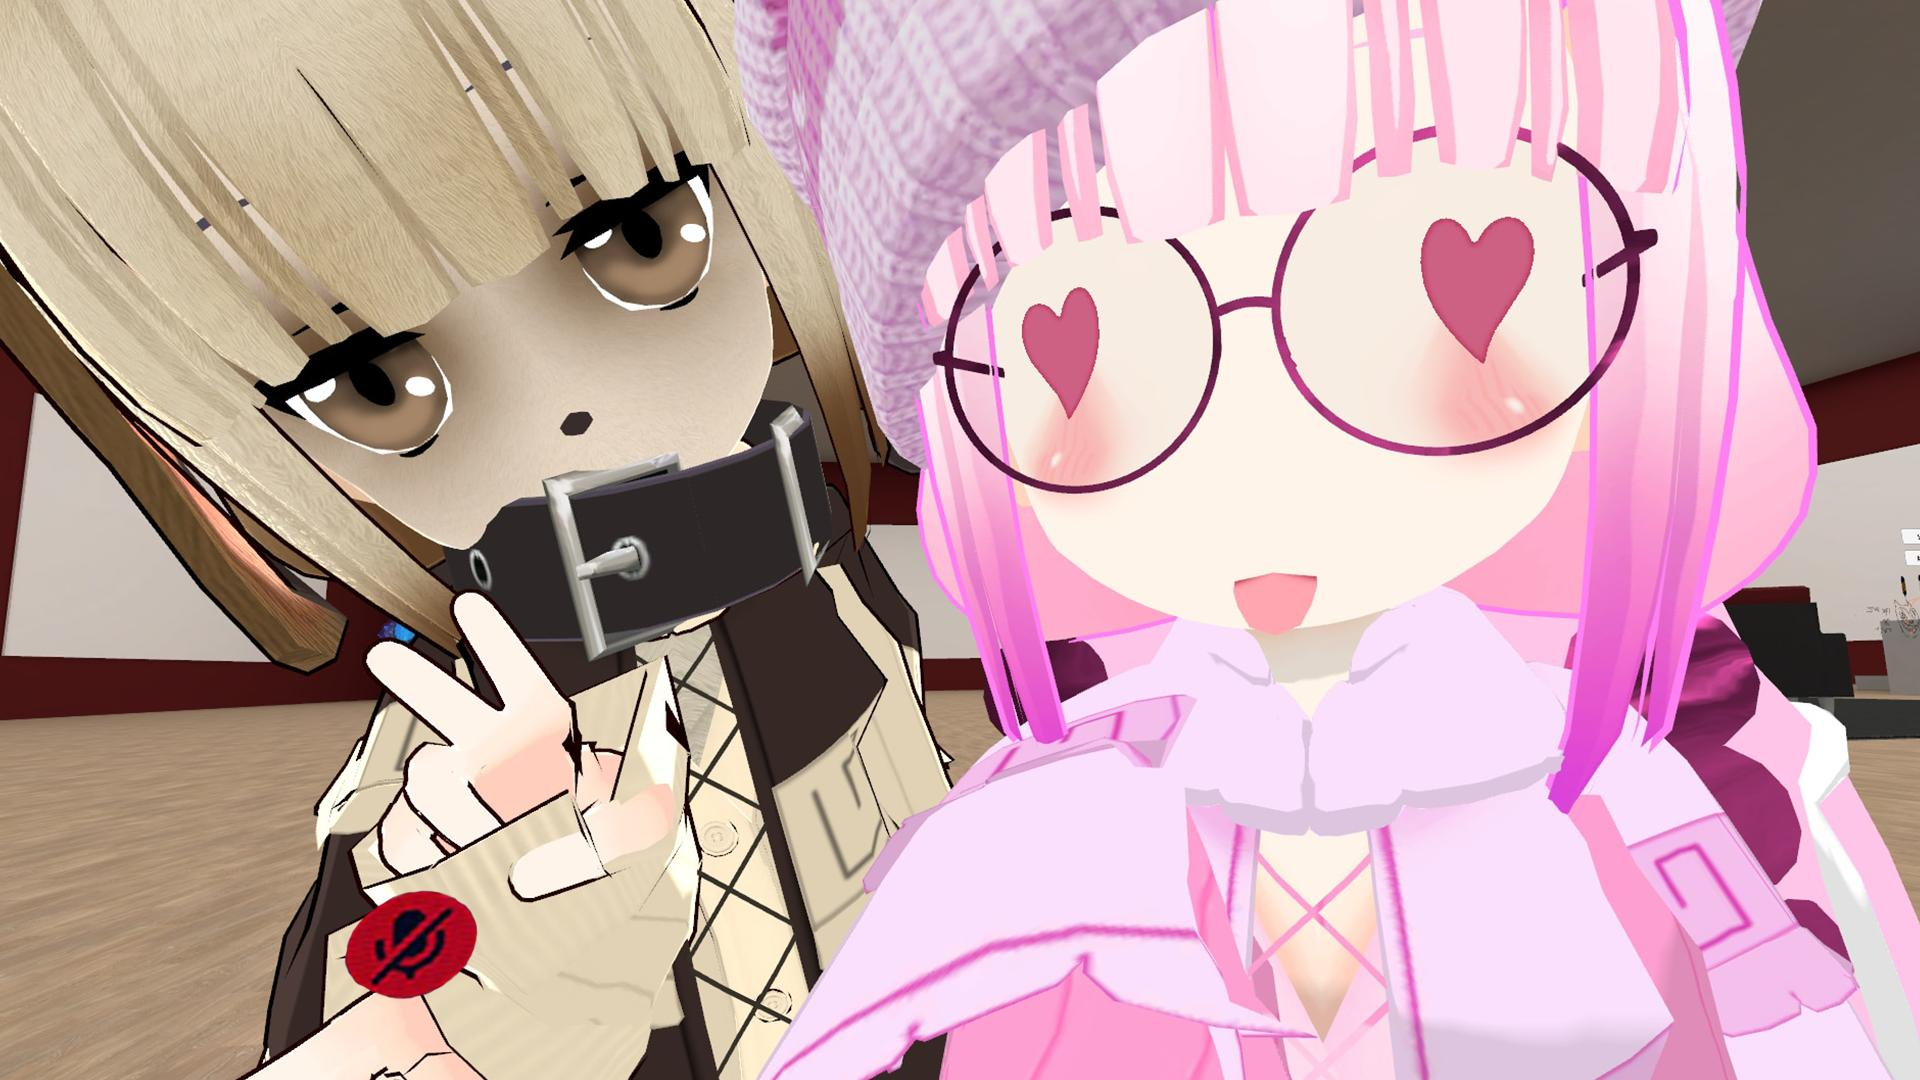 Vrchat Cute Girl Avatars For Android Apk Download - roblox cute girl avatars